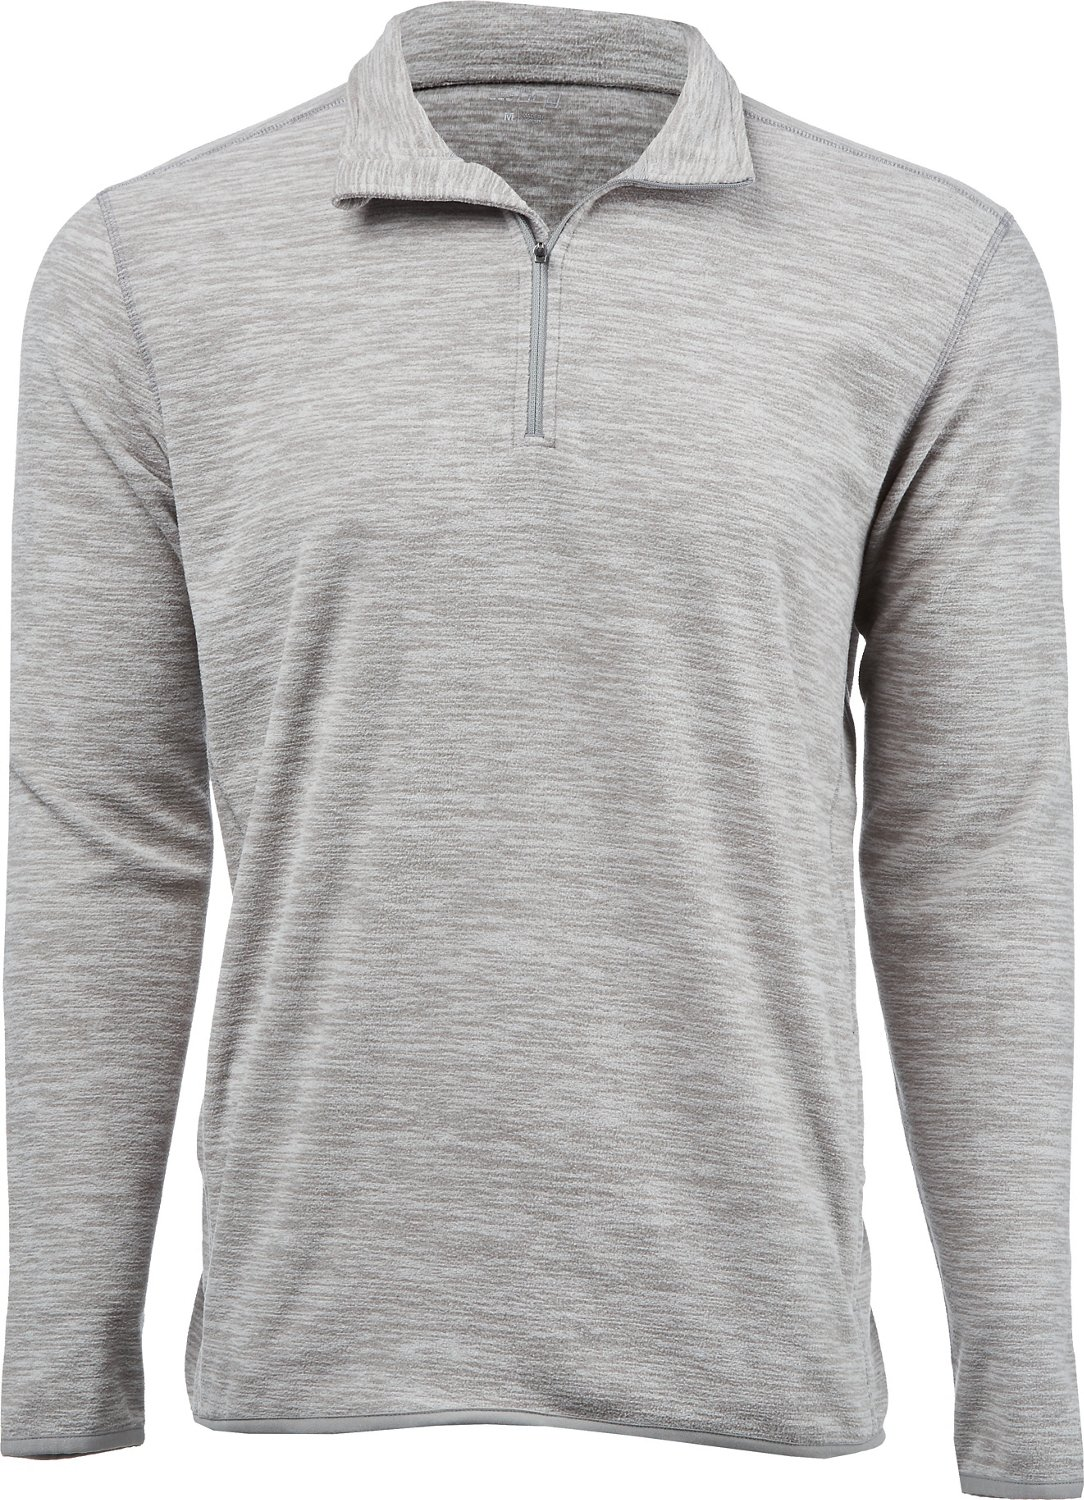 ce5f7674a13d Display product reviews for BCG Men s Microfleece 1 4-Zip Shirt